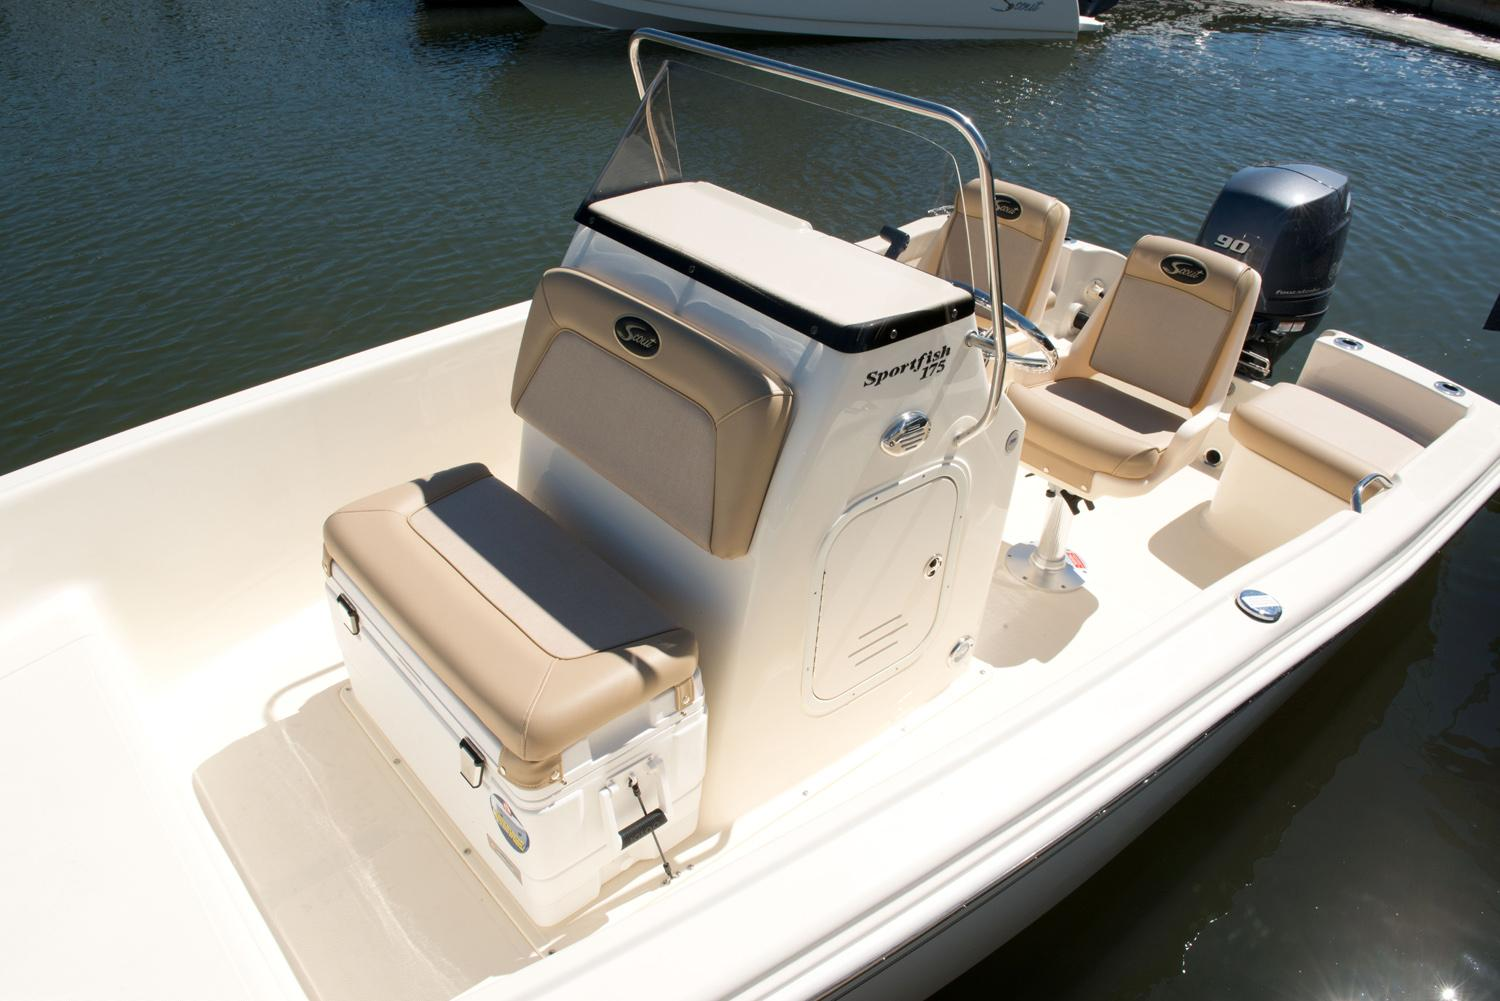 2019 Scout Boats 175 Sportfish in Bridgeport, New York - Photo 6